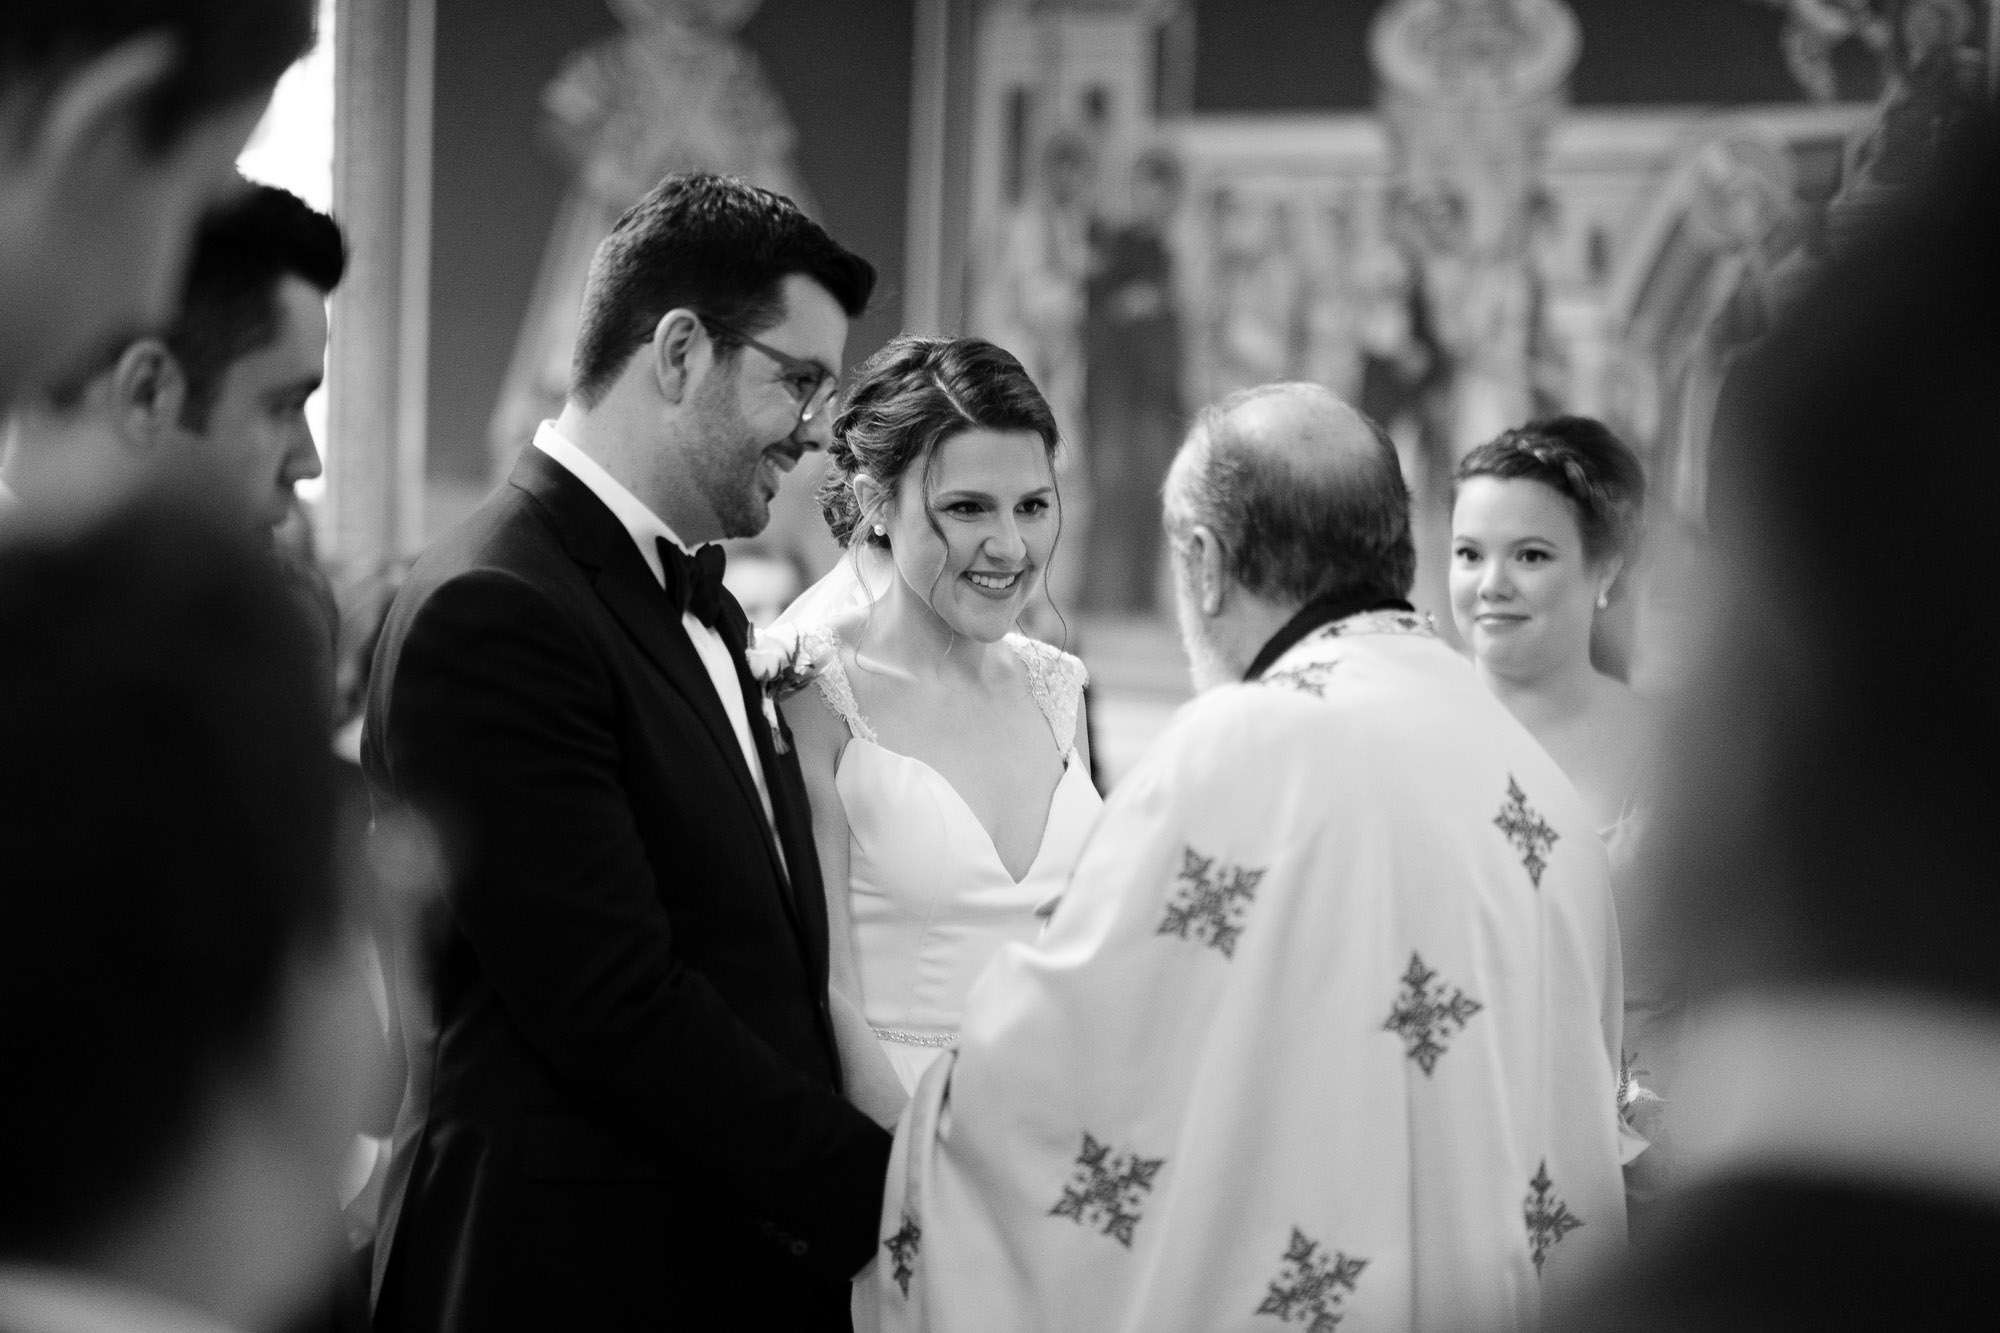 Katherine + Kosta exchange a laugh during their Greek Orthodox wedding ceremony at St. George's Greek Orthodox Church in Toronto.